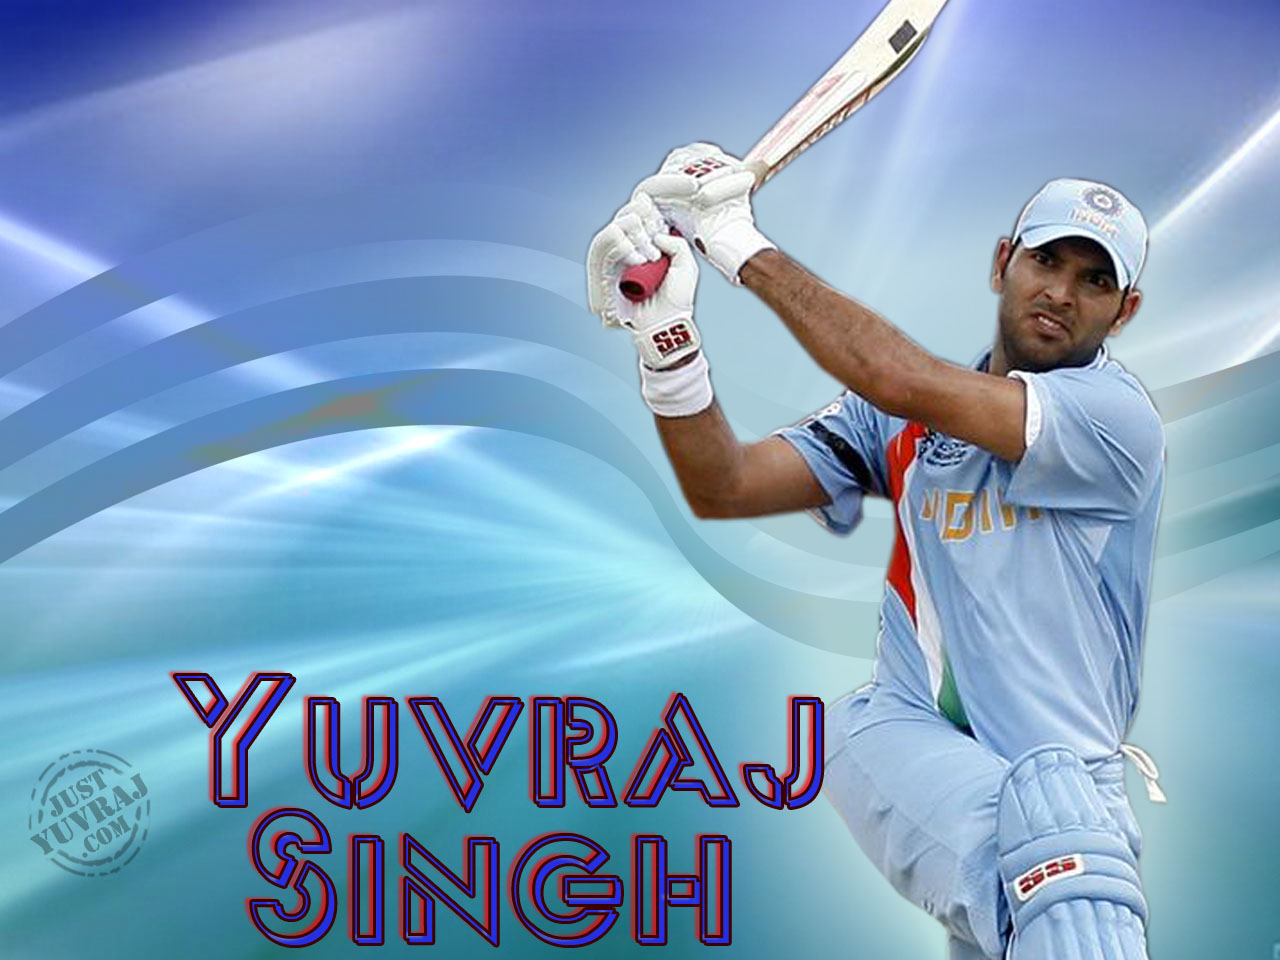 Sports Wallpaper For Walls India: Cricket Wallpapers HD